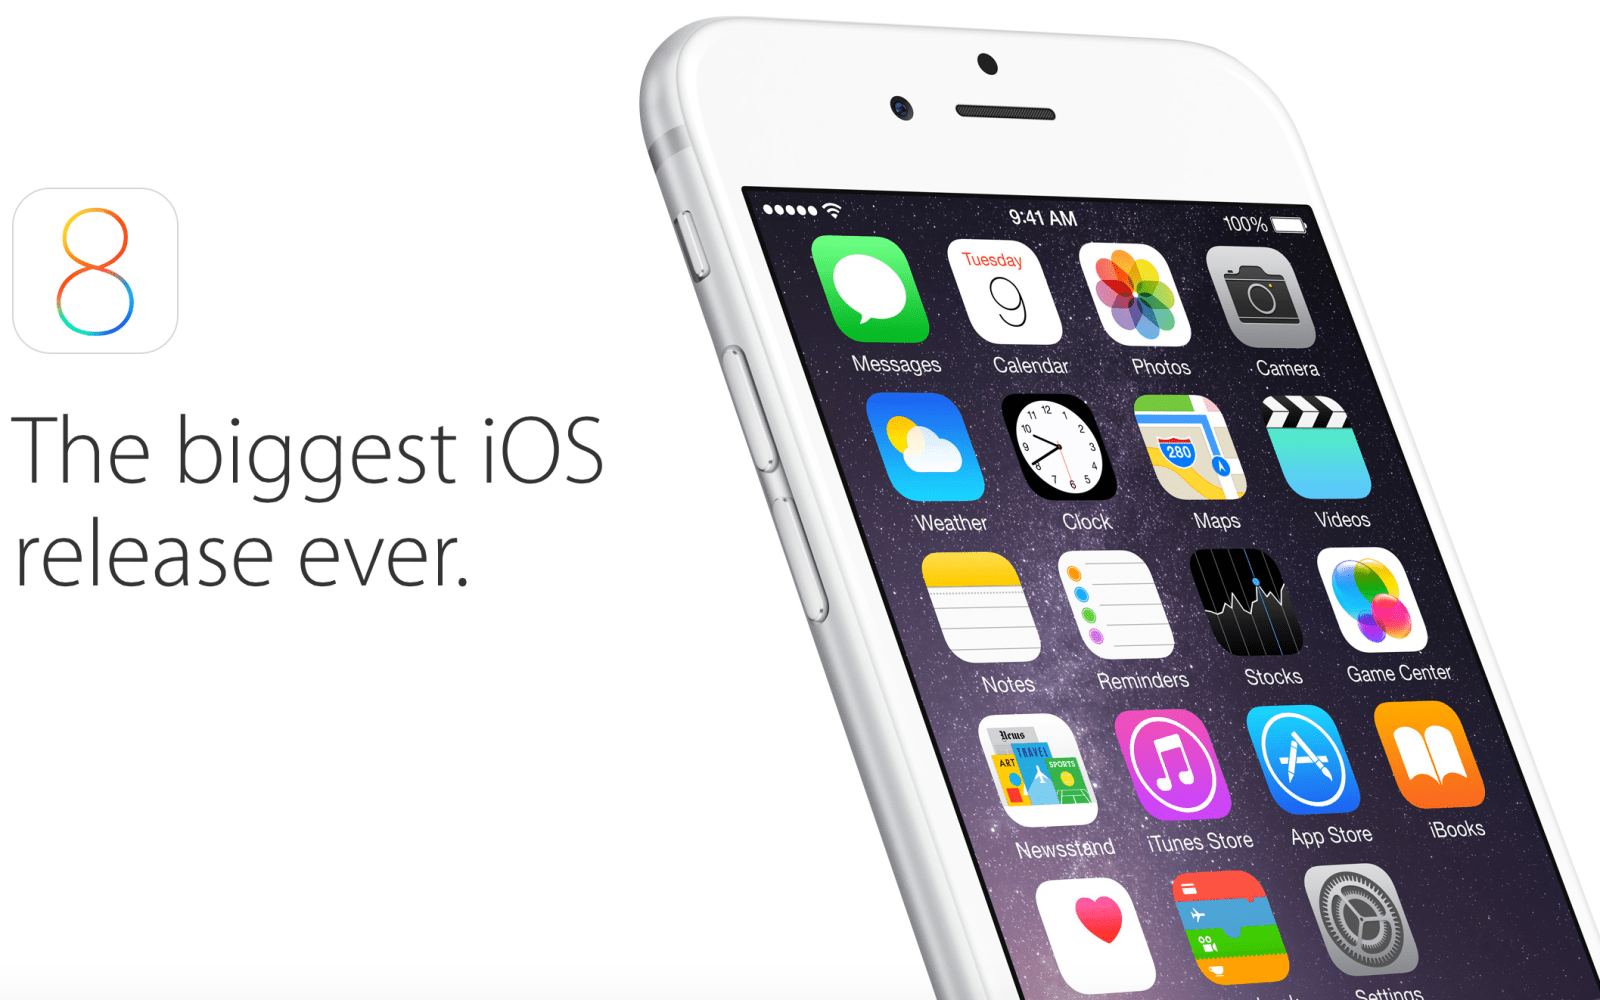 Apple developing iOS 8.1, 8.2, & 8.3 in shift for 2015 launches